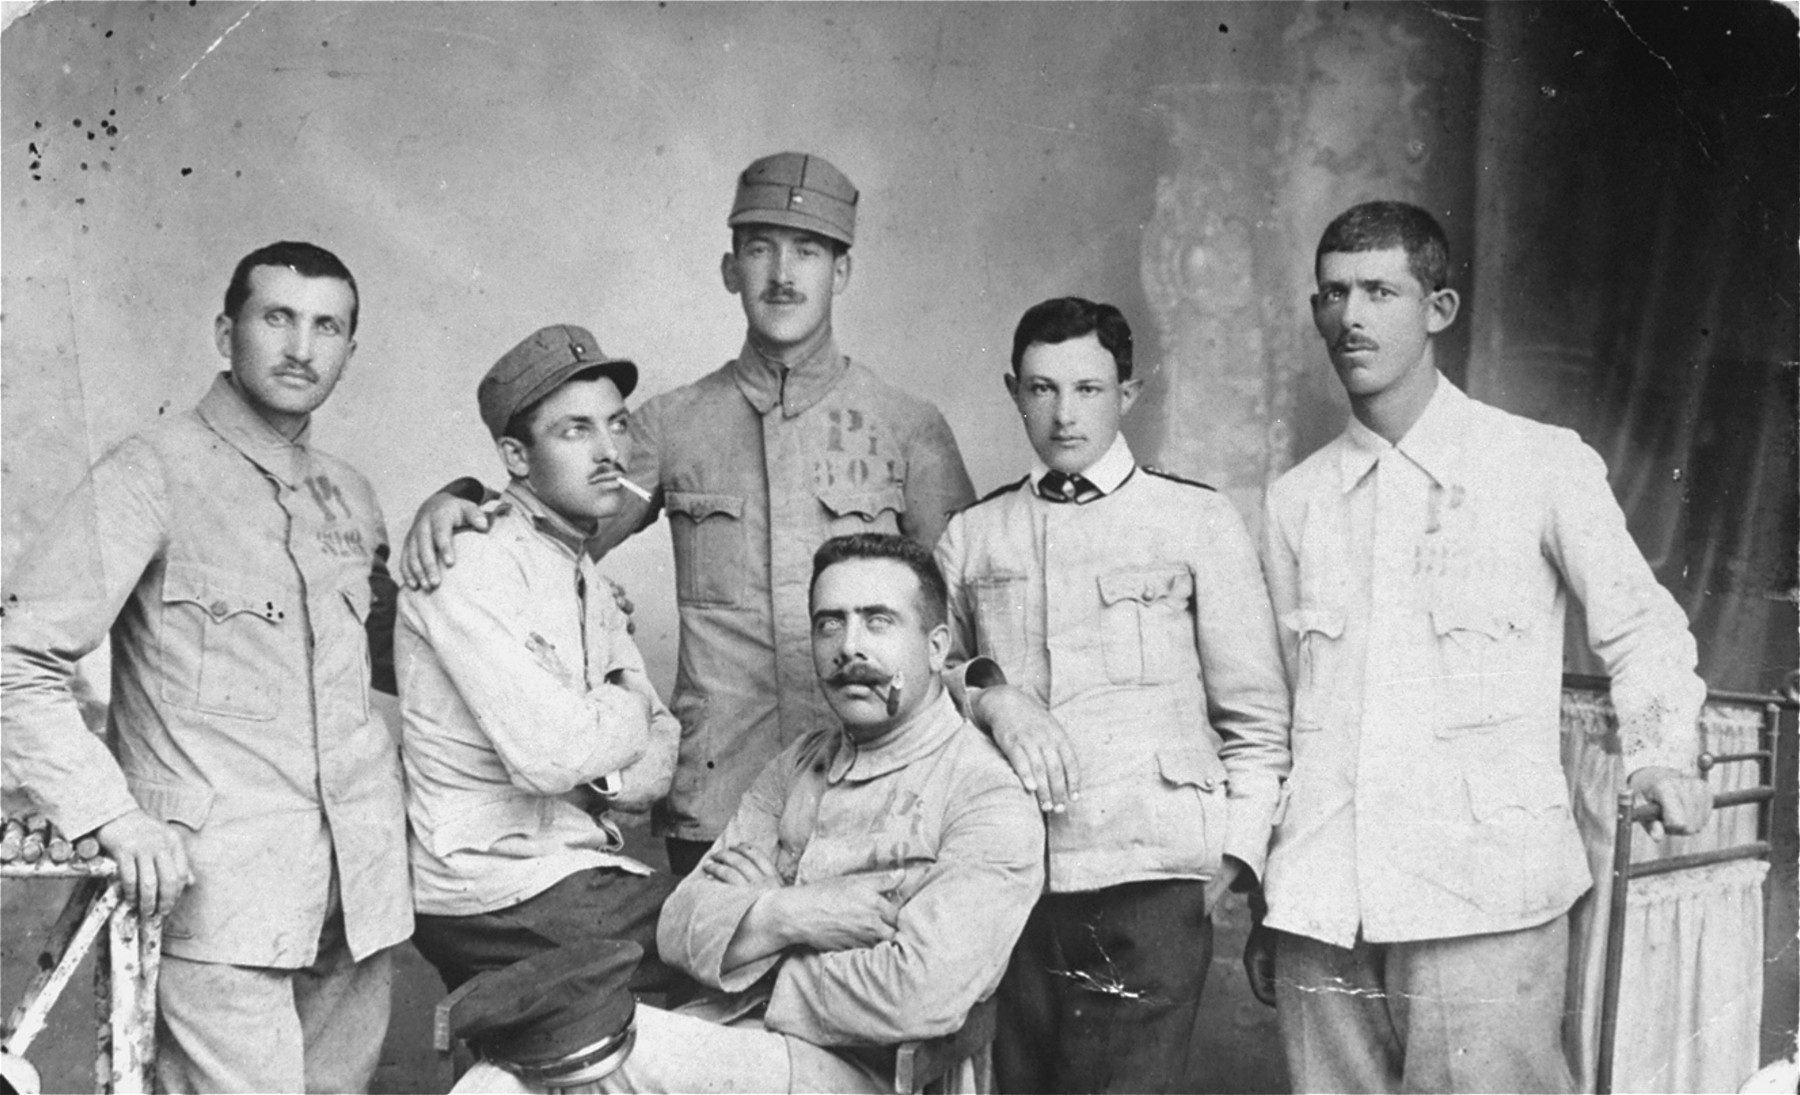 Group portrait of Jewish soldiers in the Romanian army during World War I.  Among those pictured is Leon Gutman.